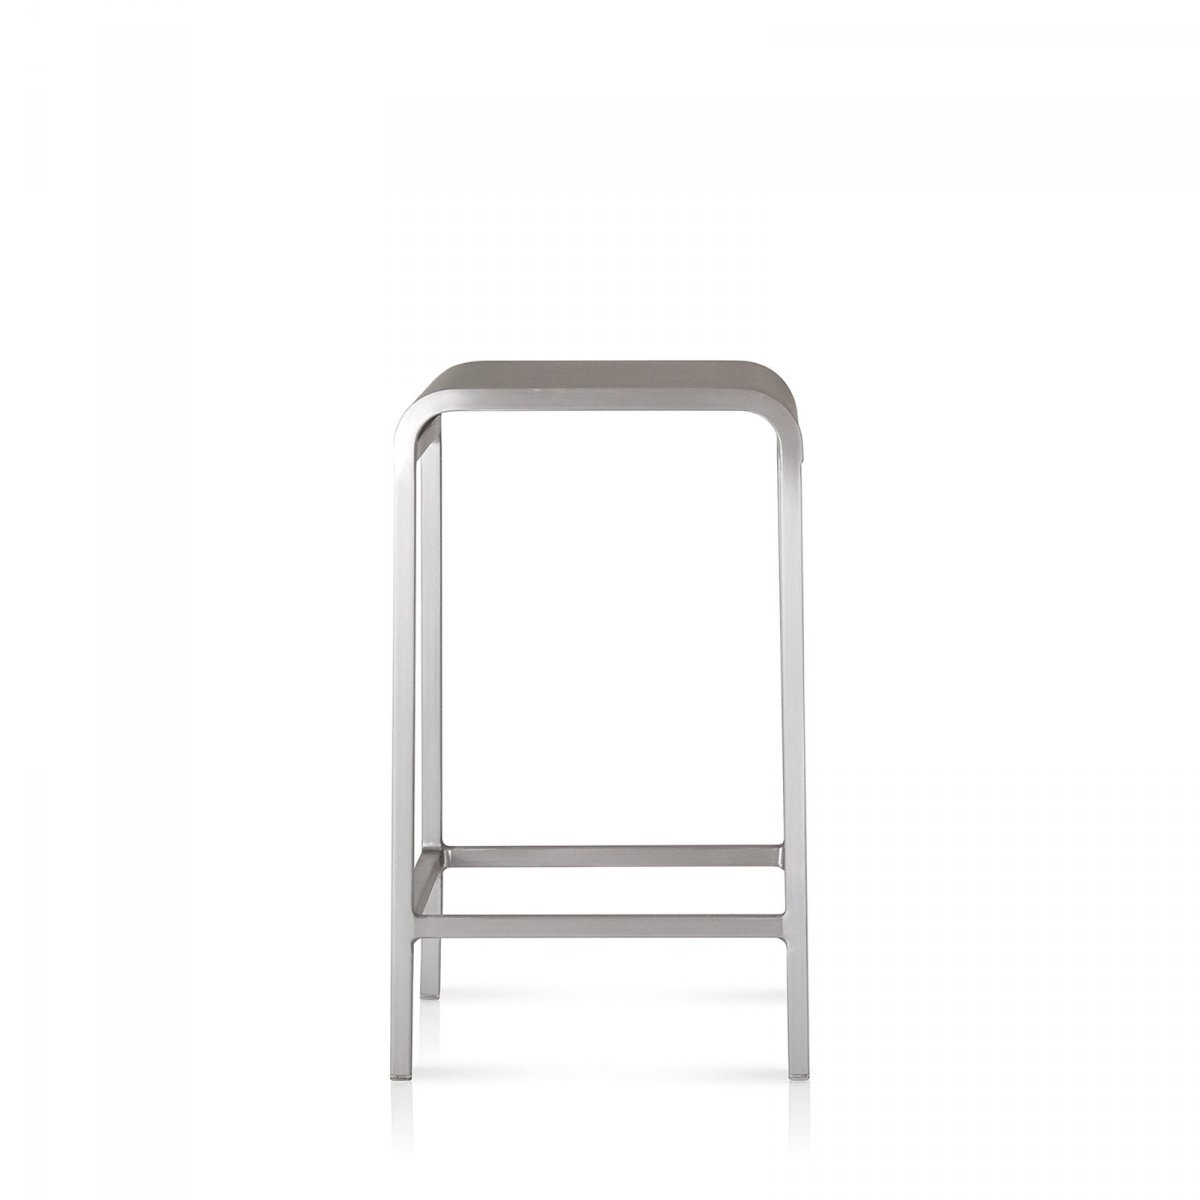 29-06 Counter Stool.